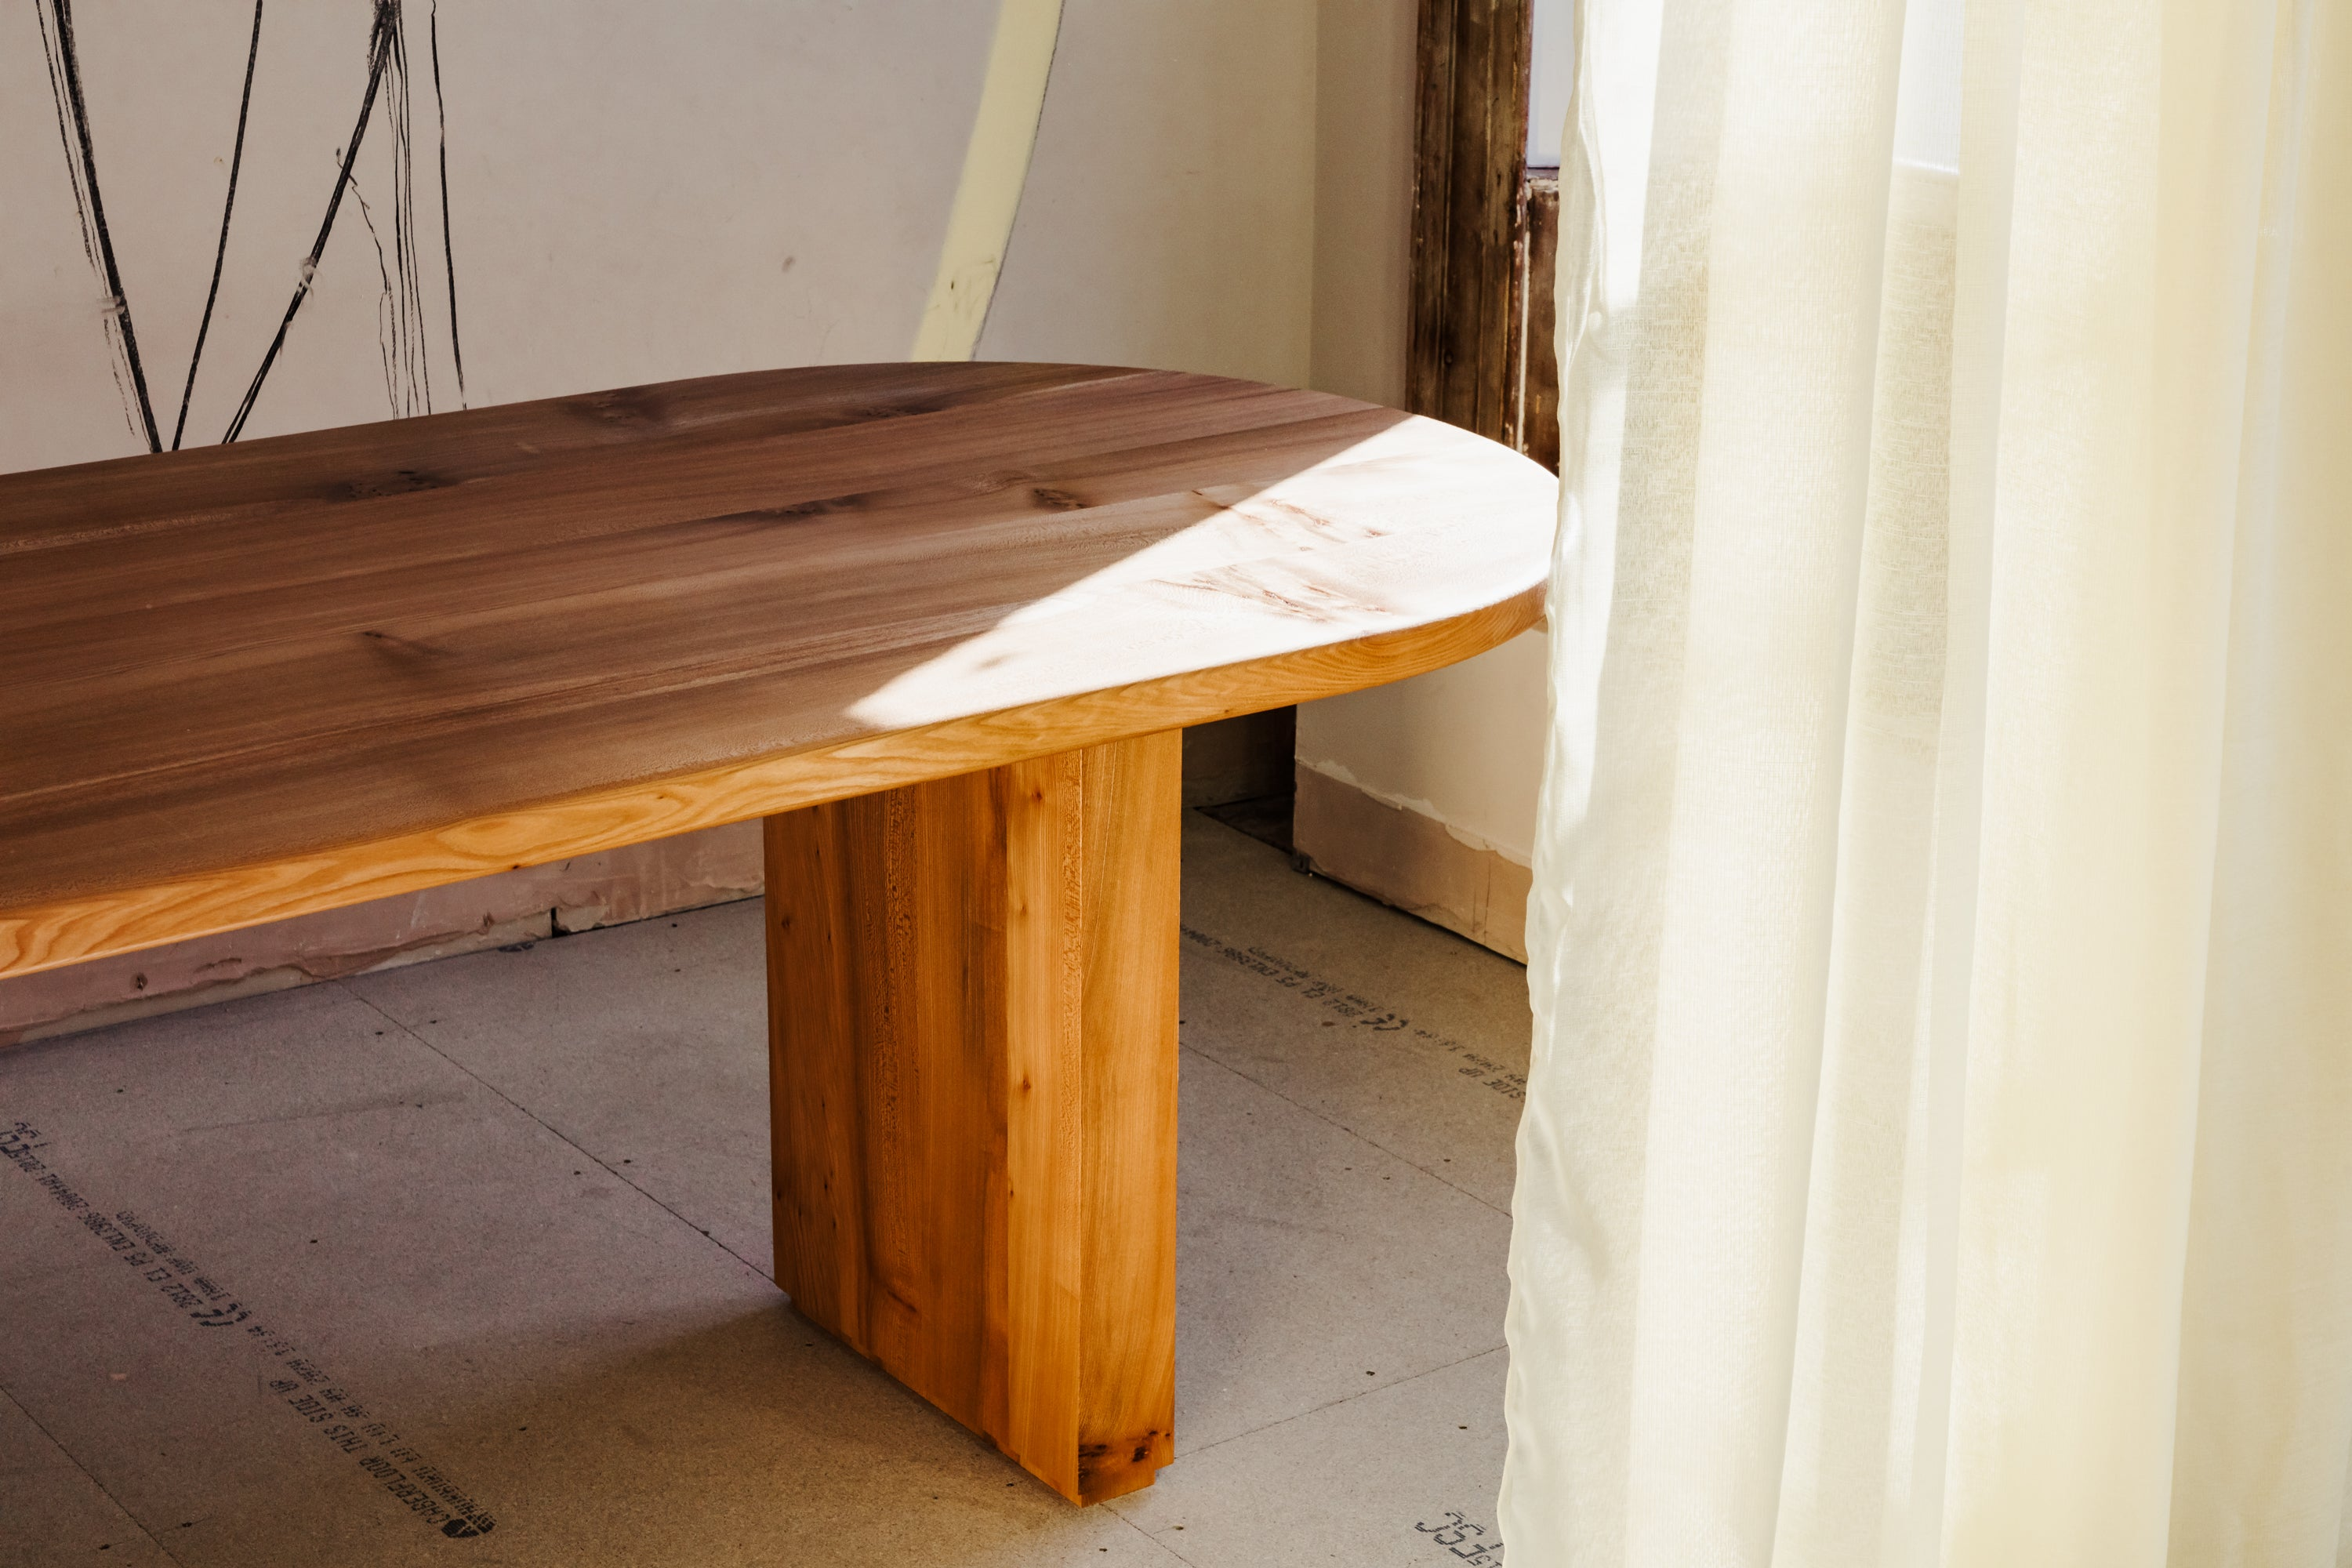 Soft Curves and the rich natural tones of English Elm